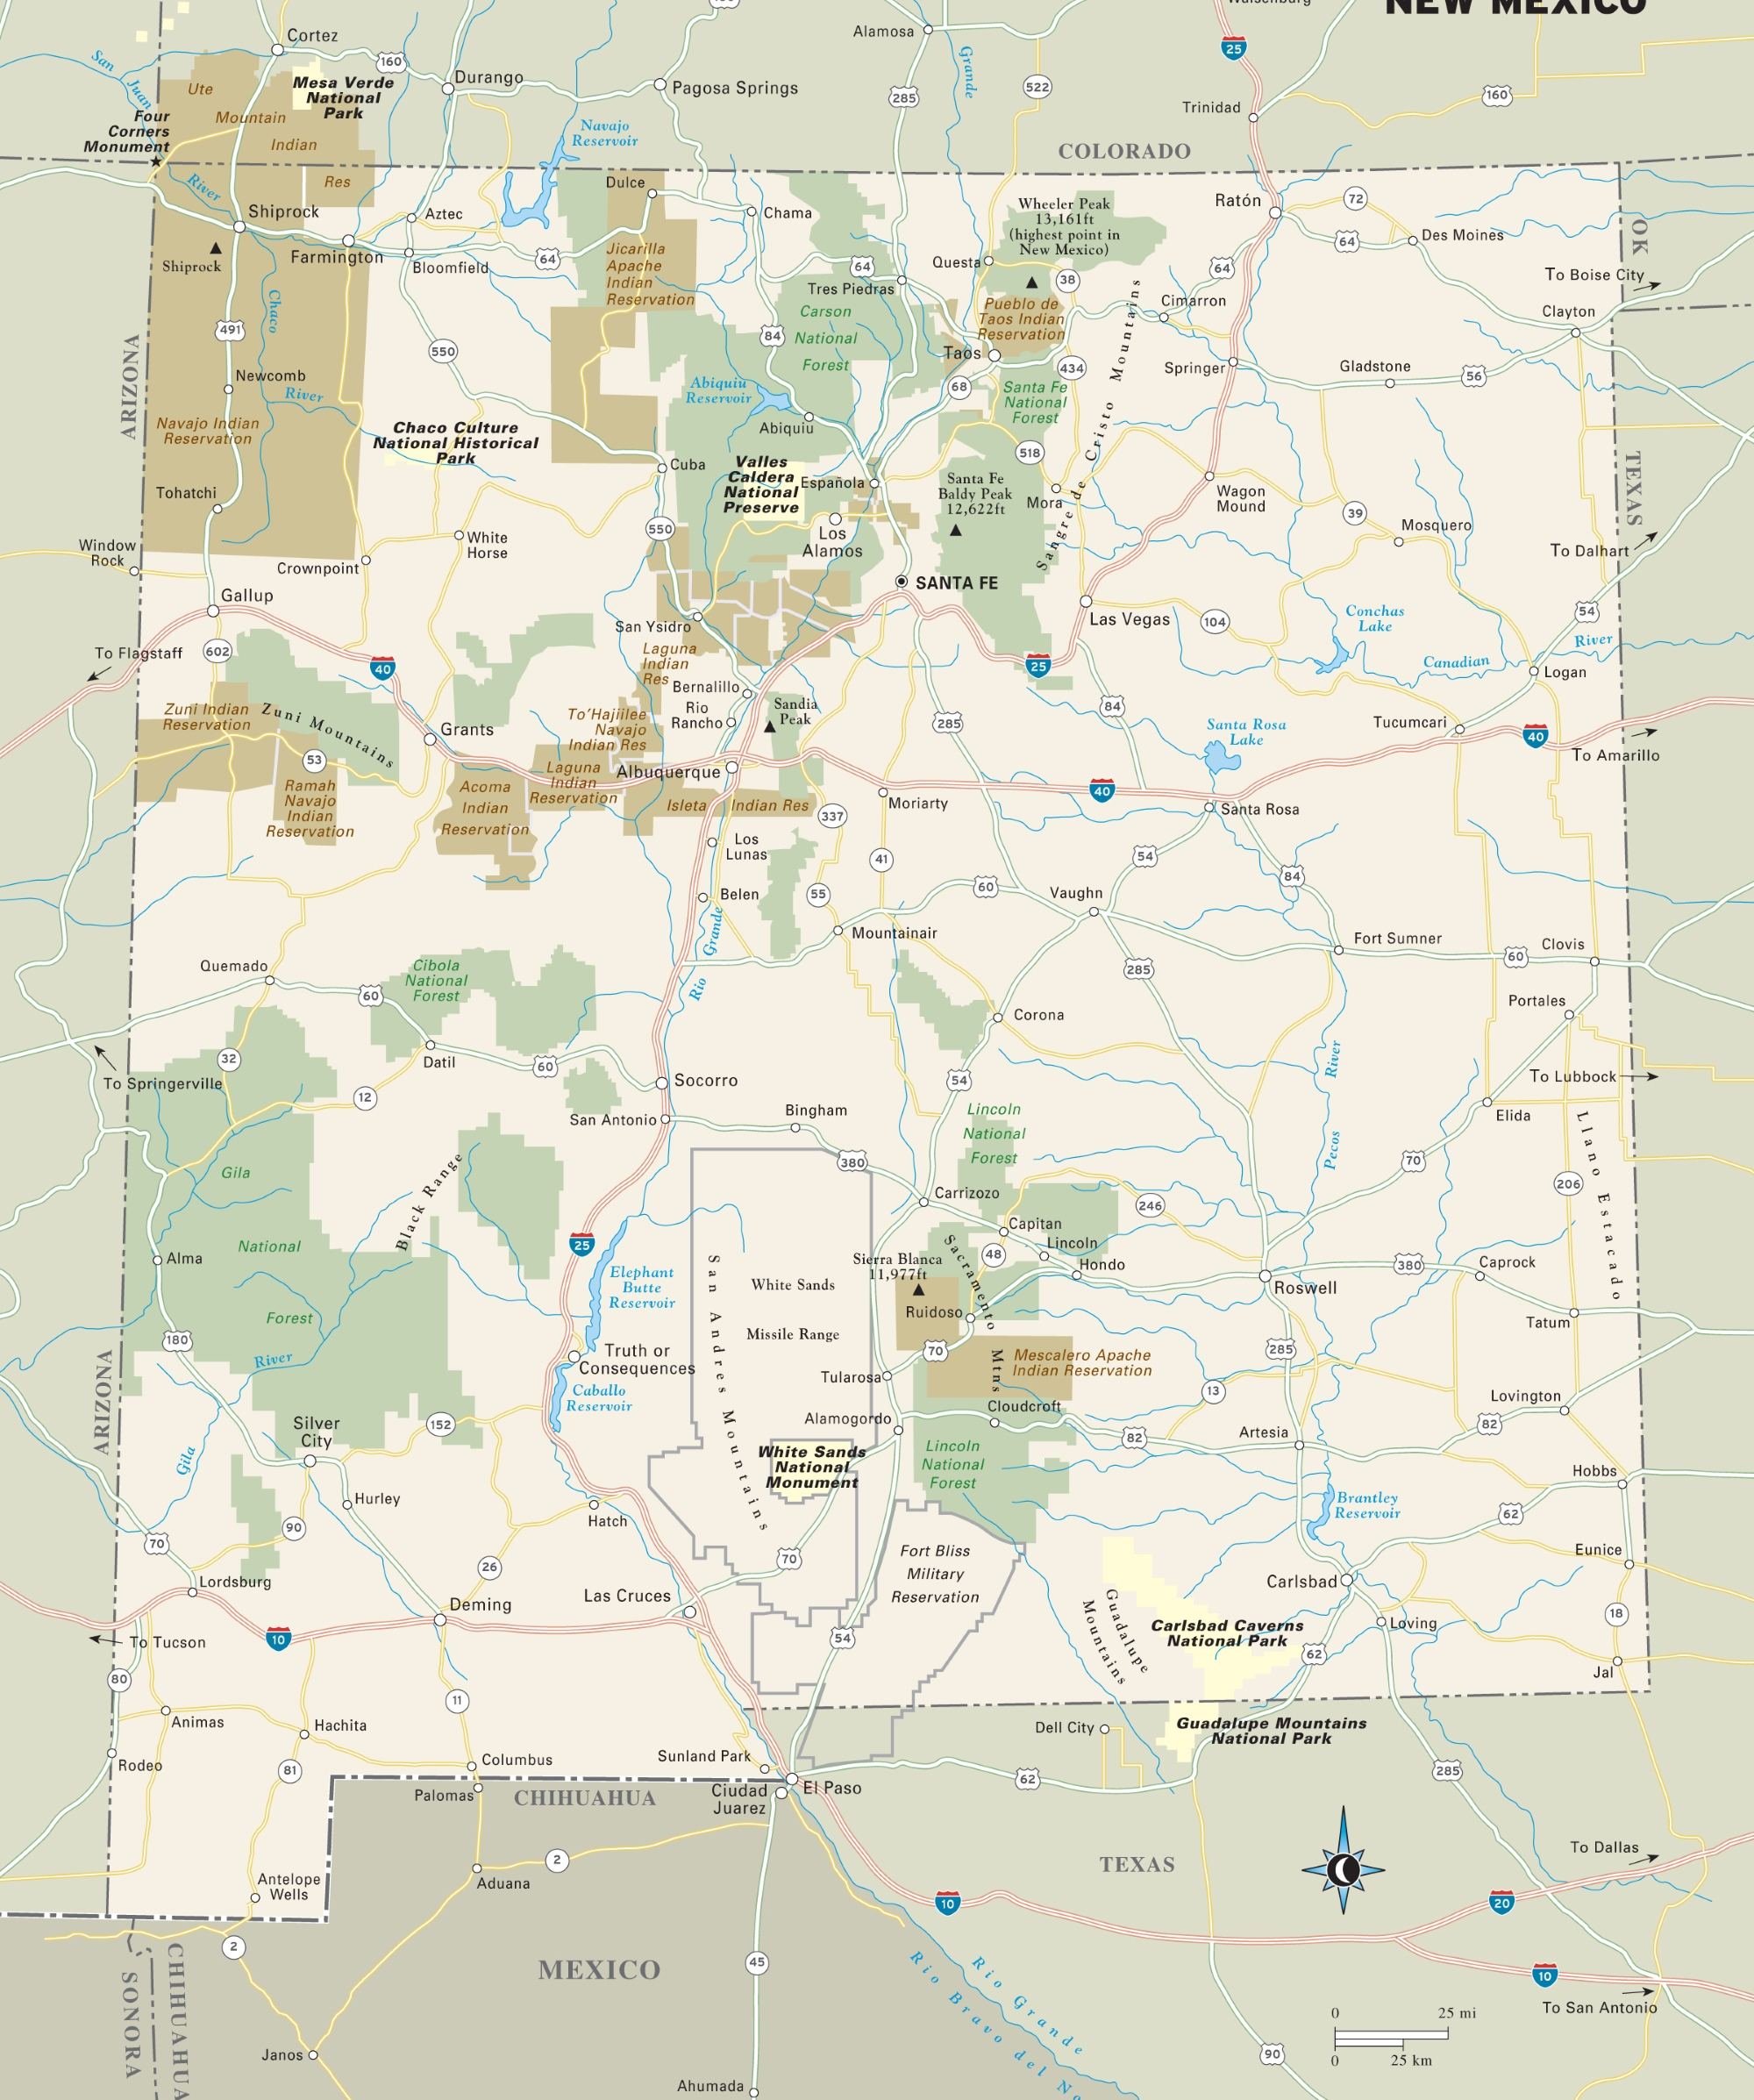 New Mexico national parks, monuments and forests map on map of national forests in us, map of state parks in us, map of western us national parks, map showing national parks, map of national parks print, map of us national parks and monuments, map of usa national parks monuments and all,